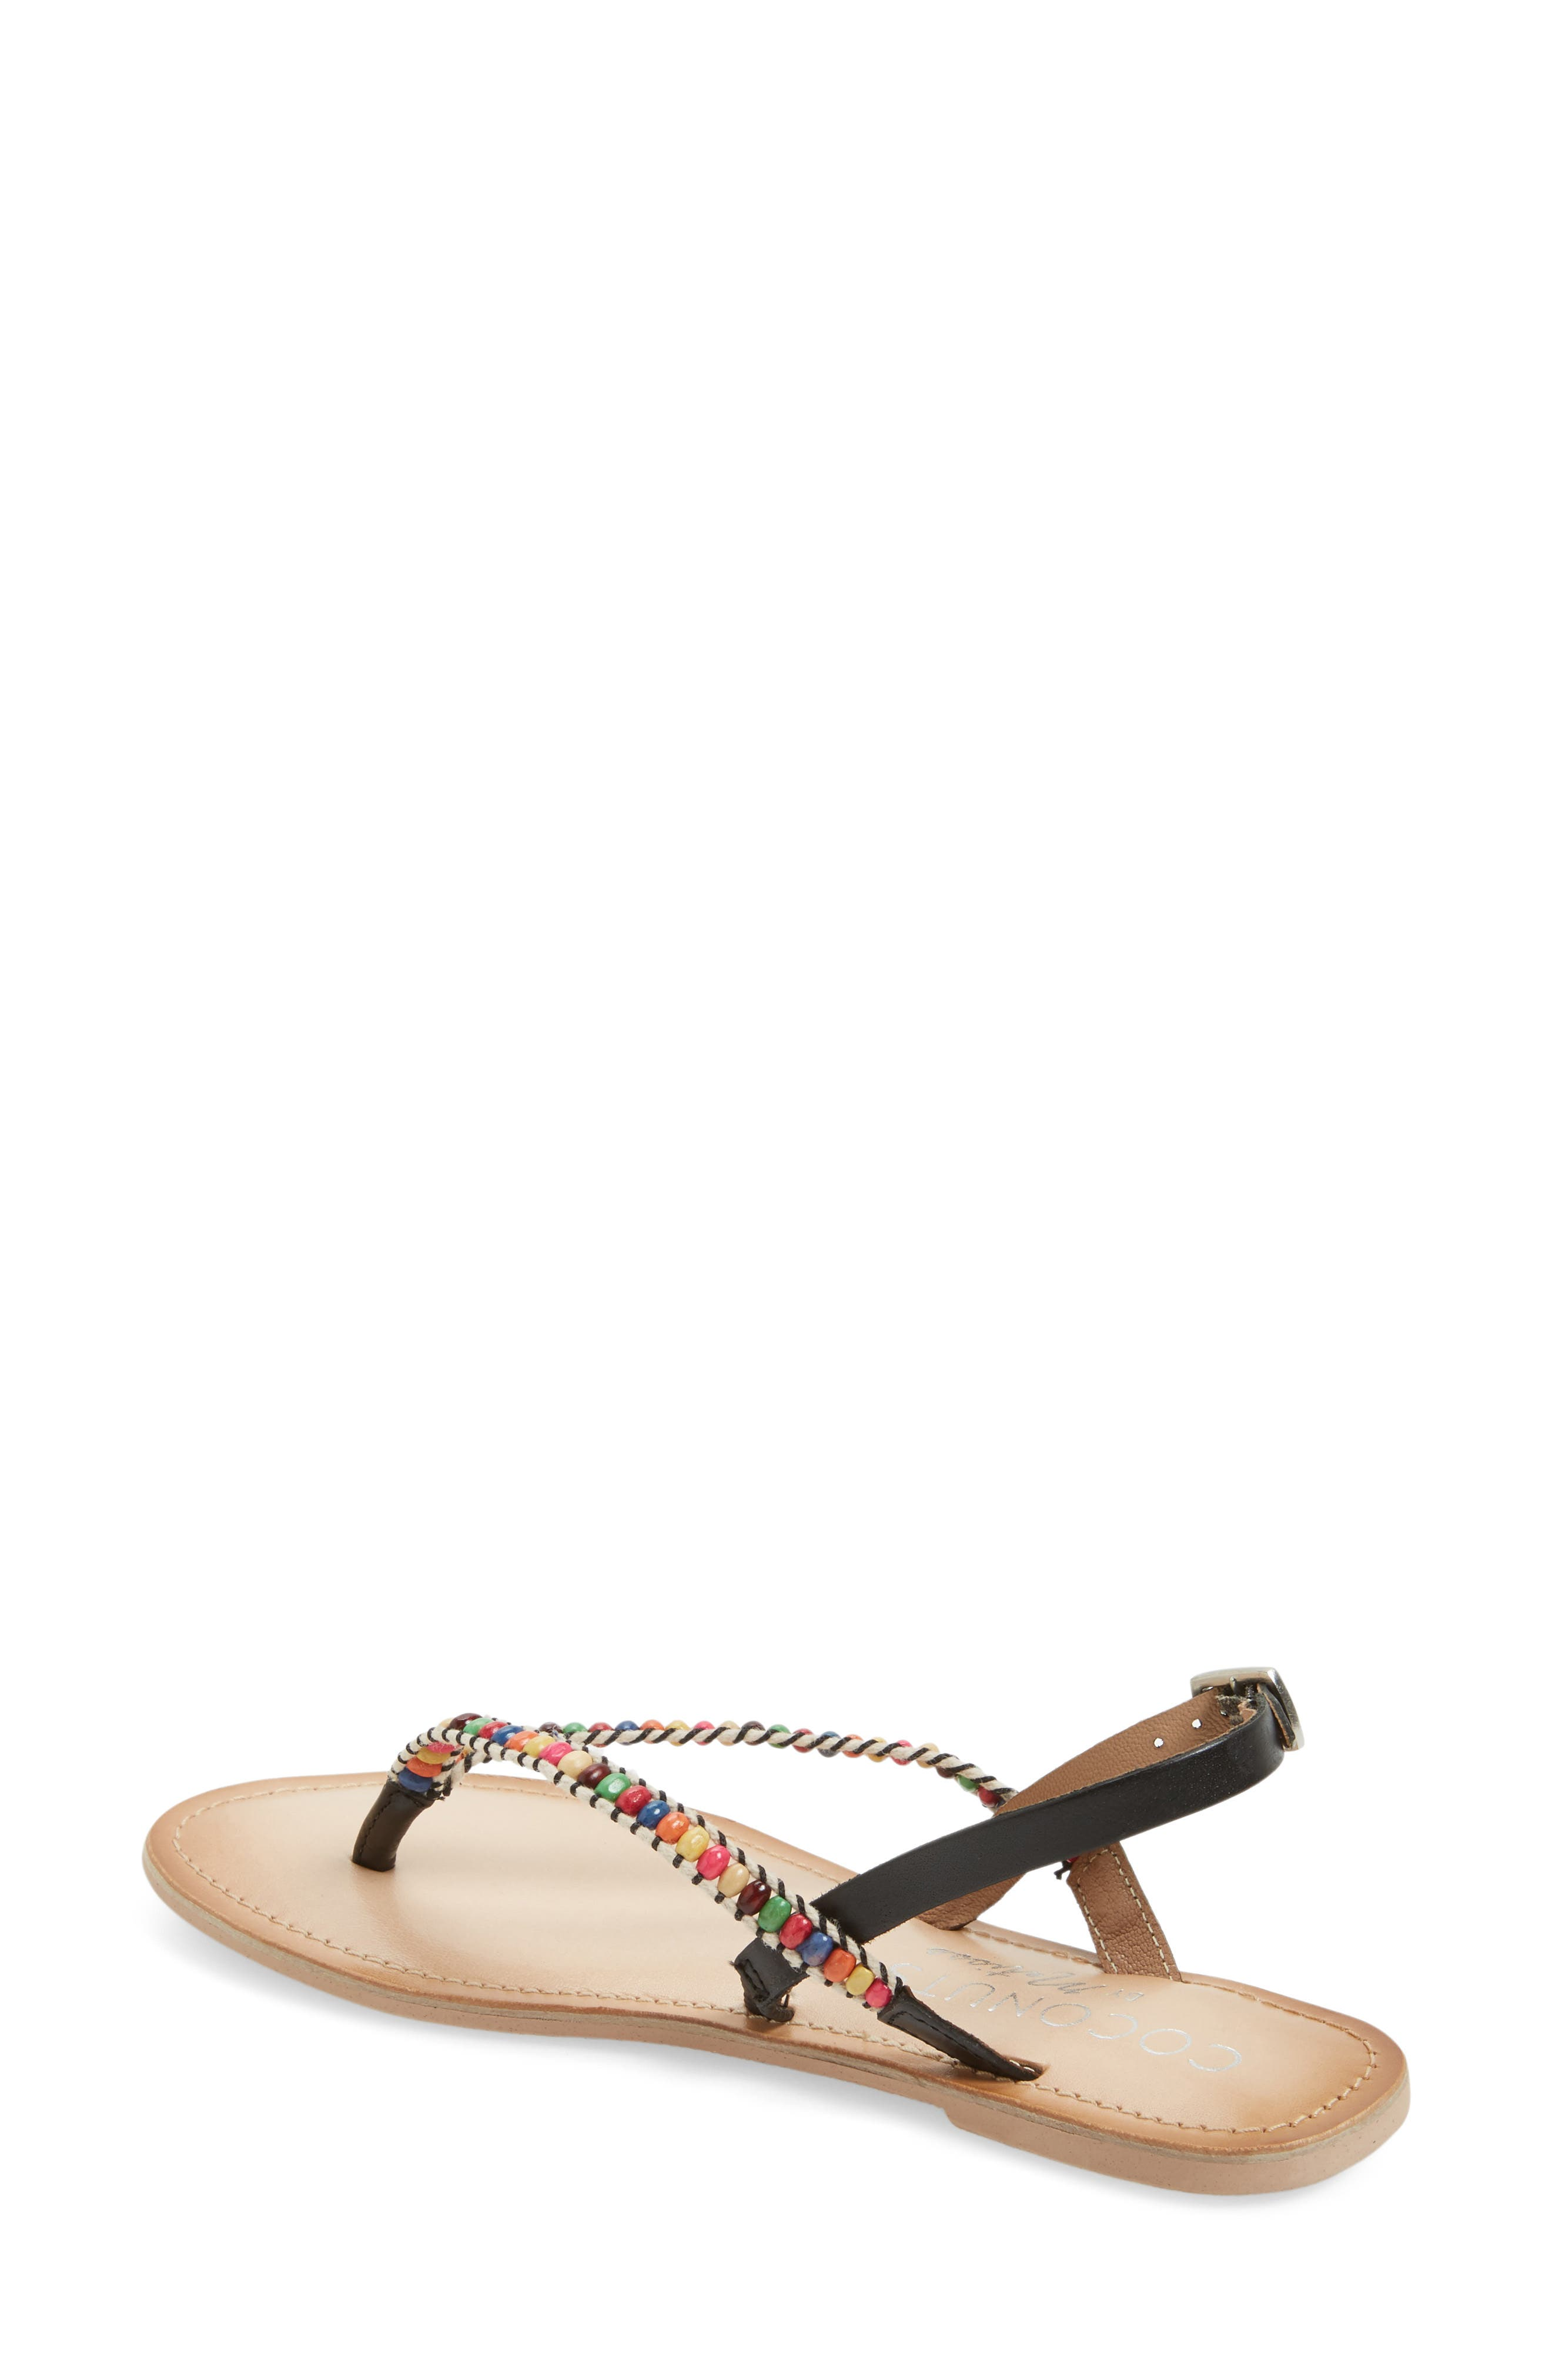 Coconuts by Matisse Celebration Beaded Sandal,                             Alternate thumbnail 2, color,                             001